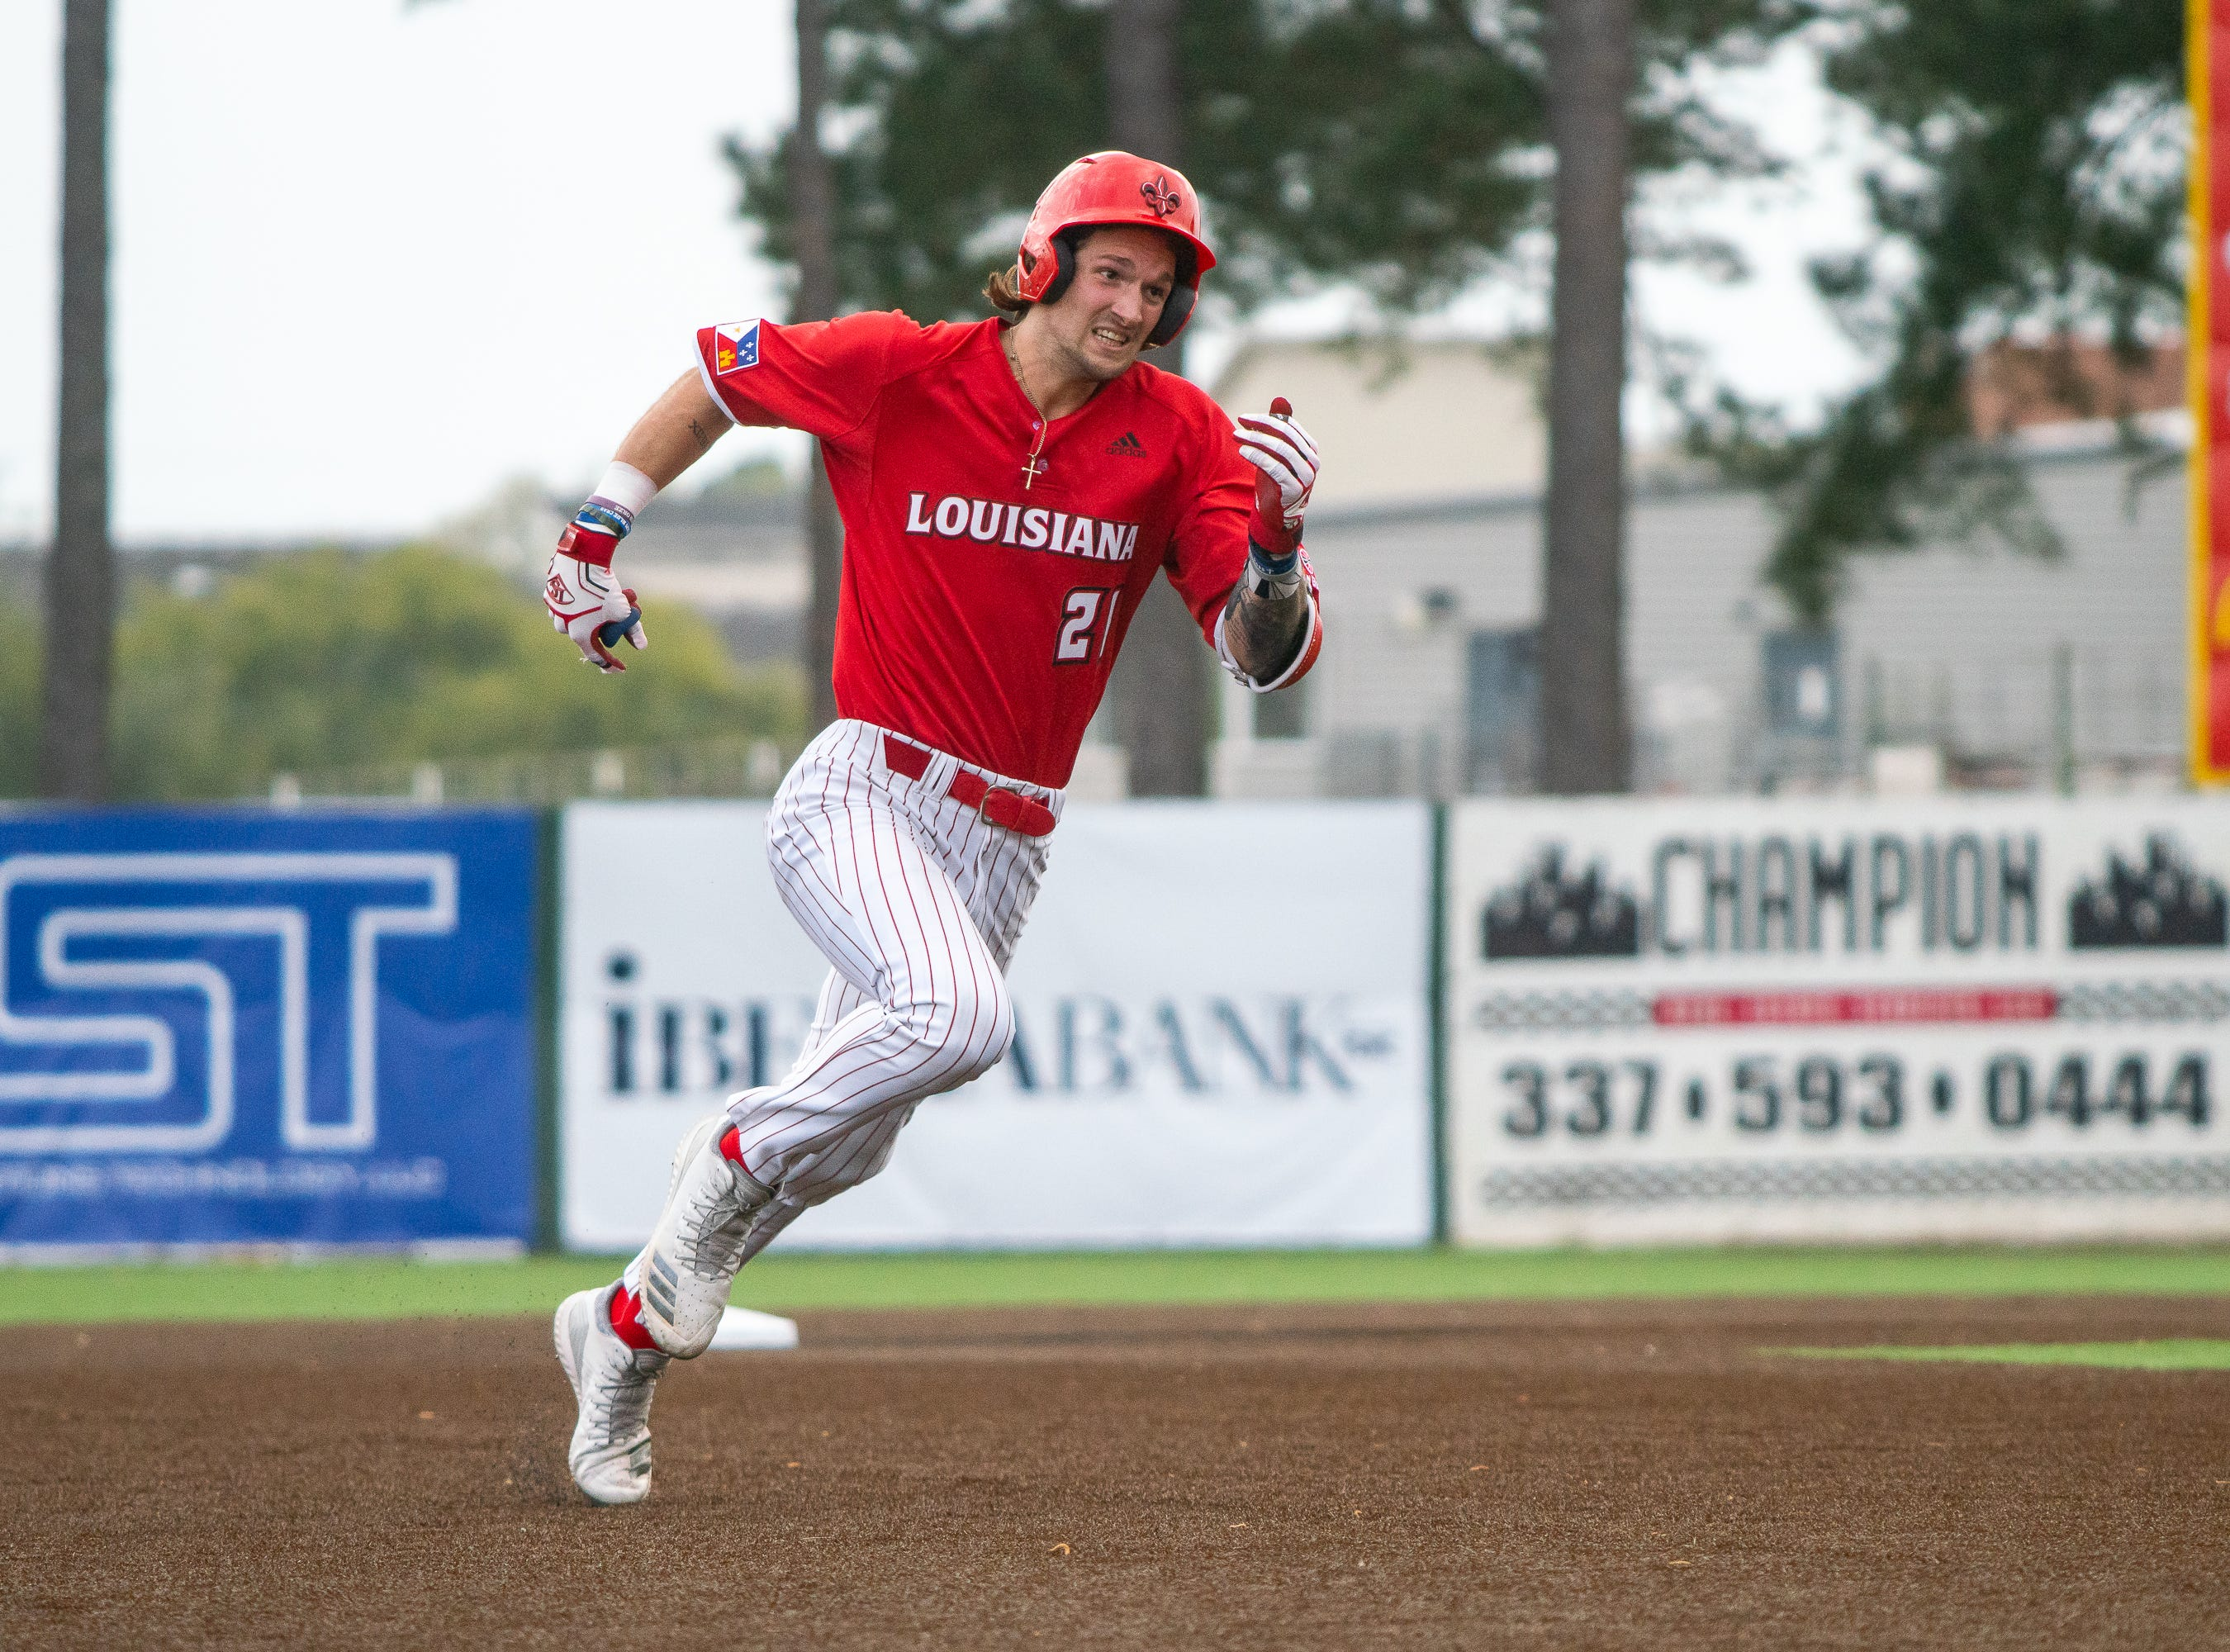 UL's Orynn Veillon sprints to third base as the Ragin' Cajuns take on the Loyola Marymount Lions at M.L. Tigue Moore Field on March 9, 2019.